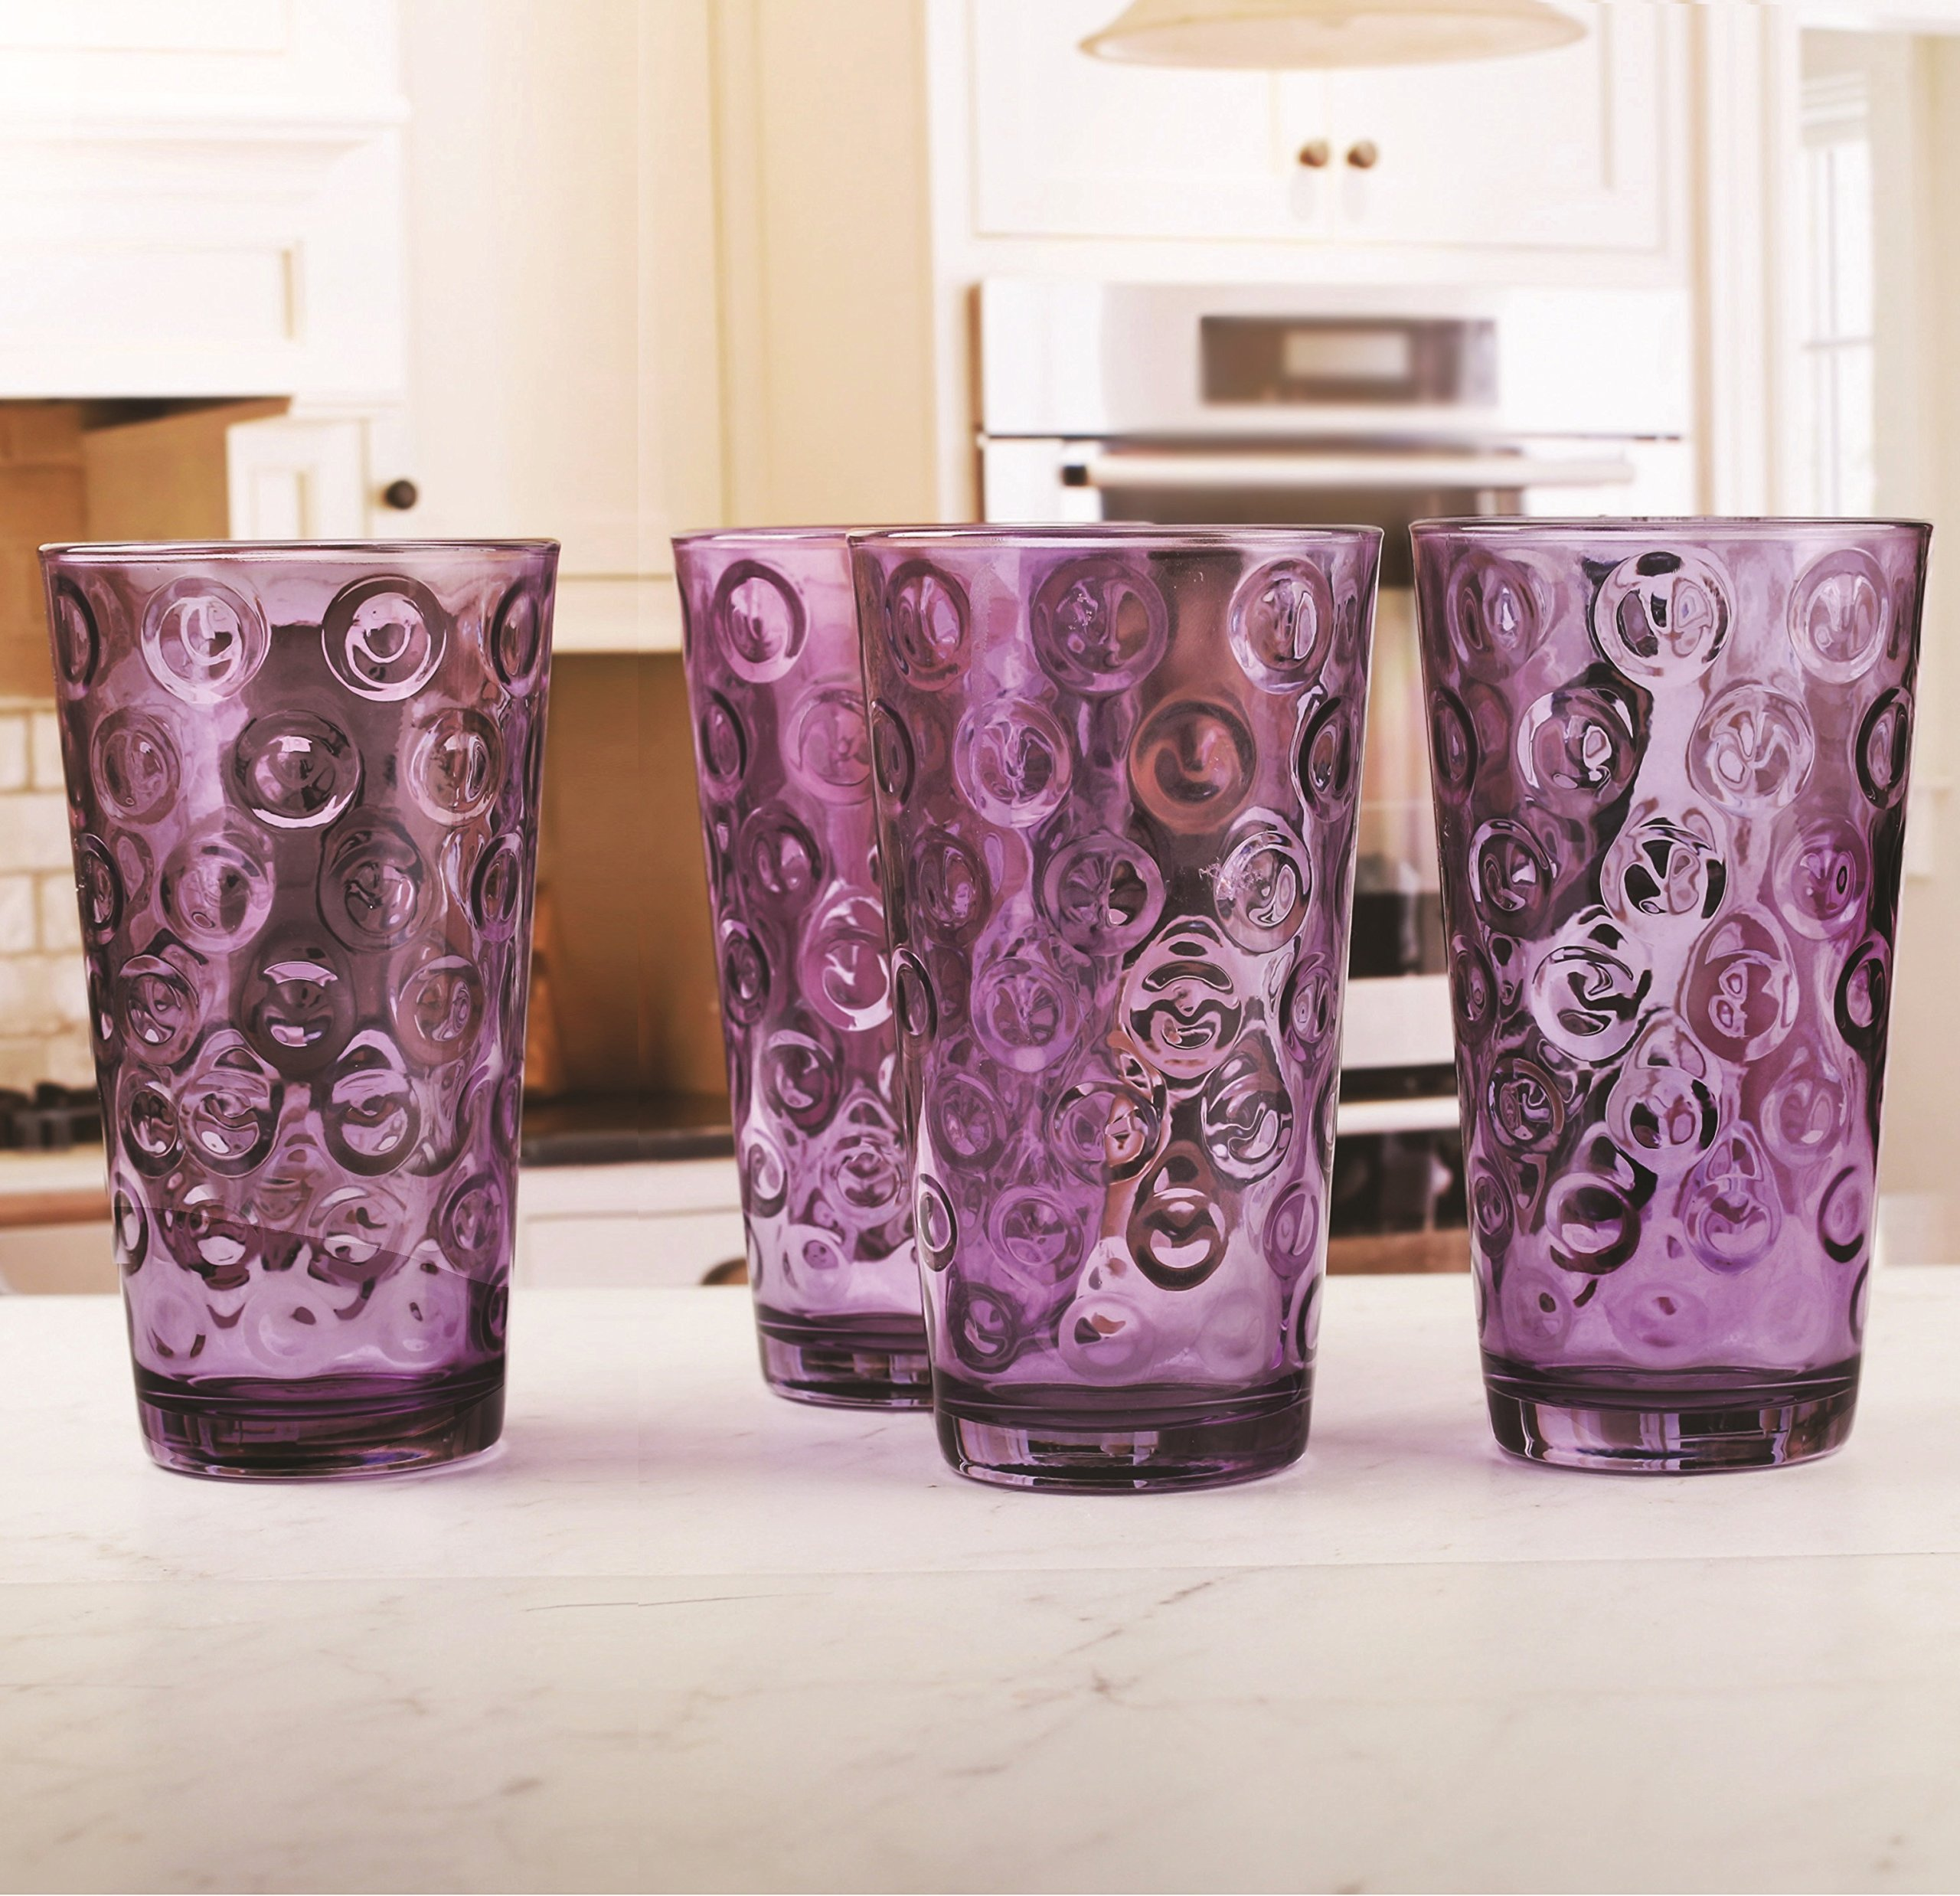 Circleware 44806 Circles Plum Huge Set of 16 Drinking 17 oz. and 8-13 oz. Double Old Fashioned Whiskey Juice Water Beer Beverage Glass, 16pc Set by Circleware (Image #5)